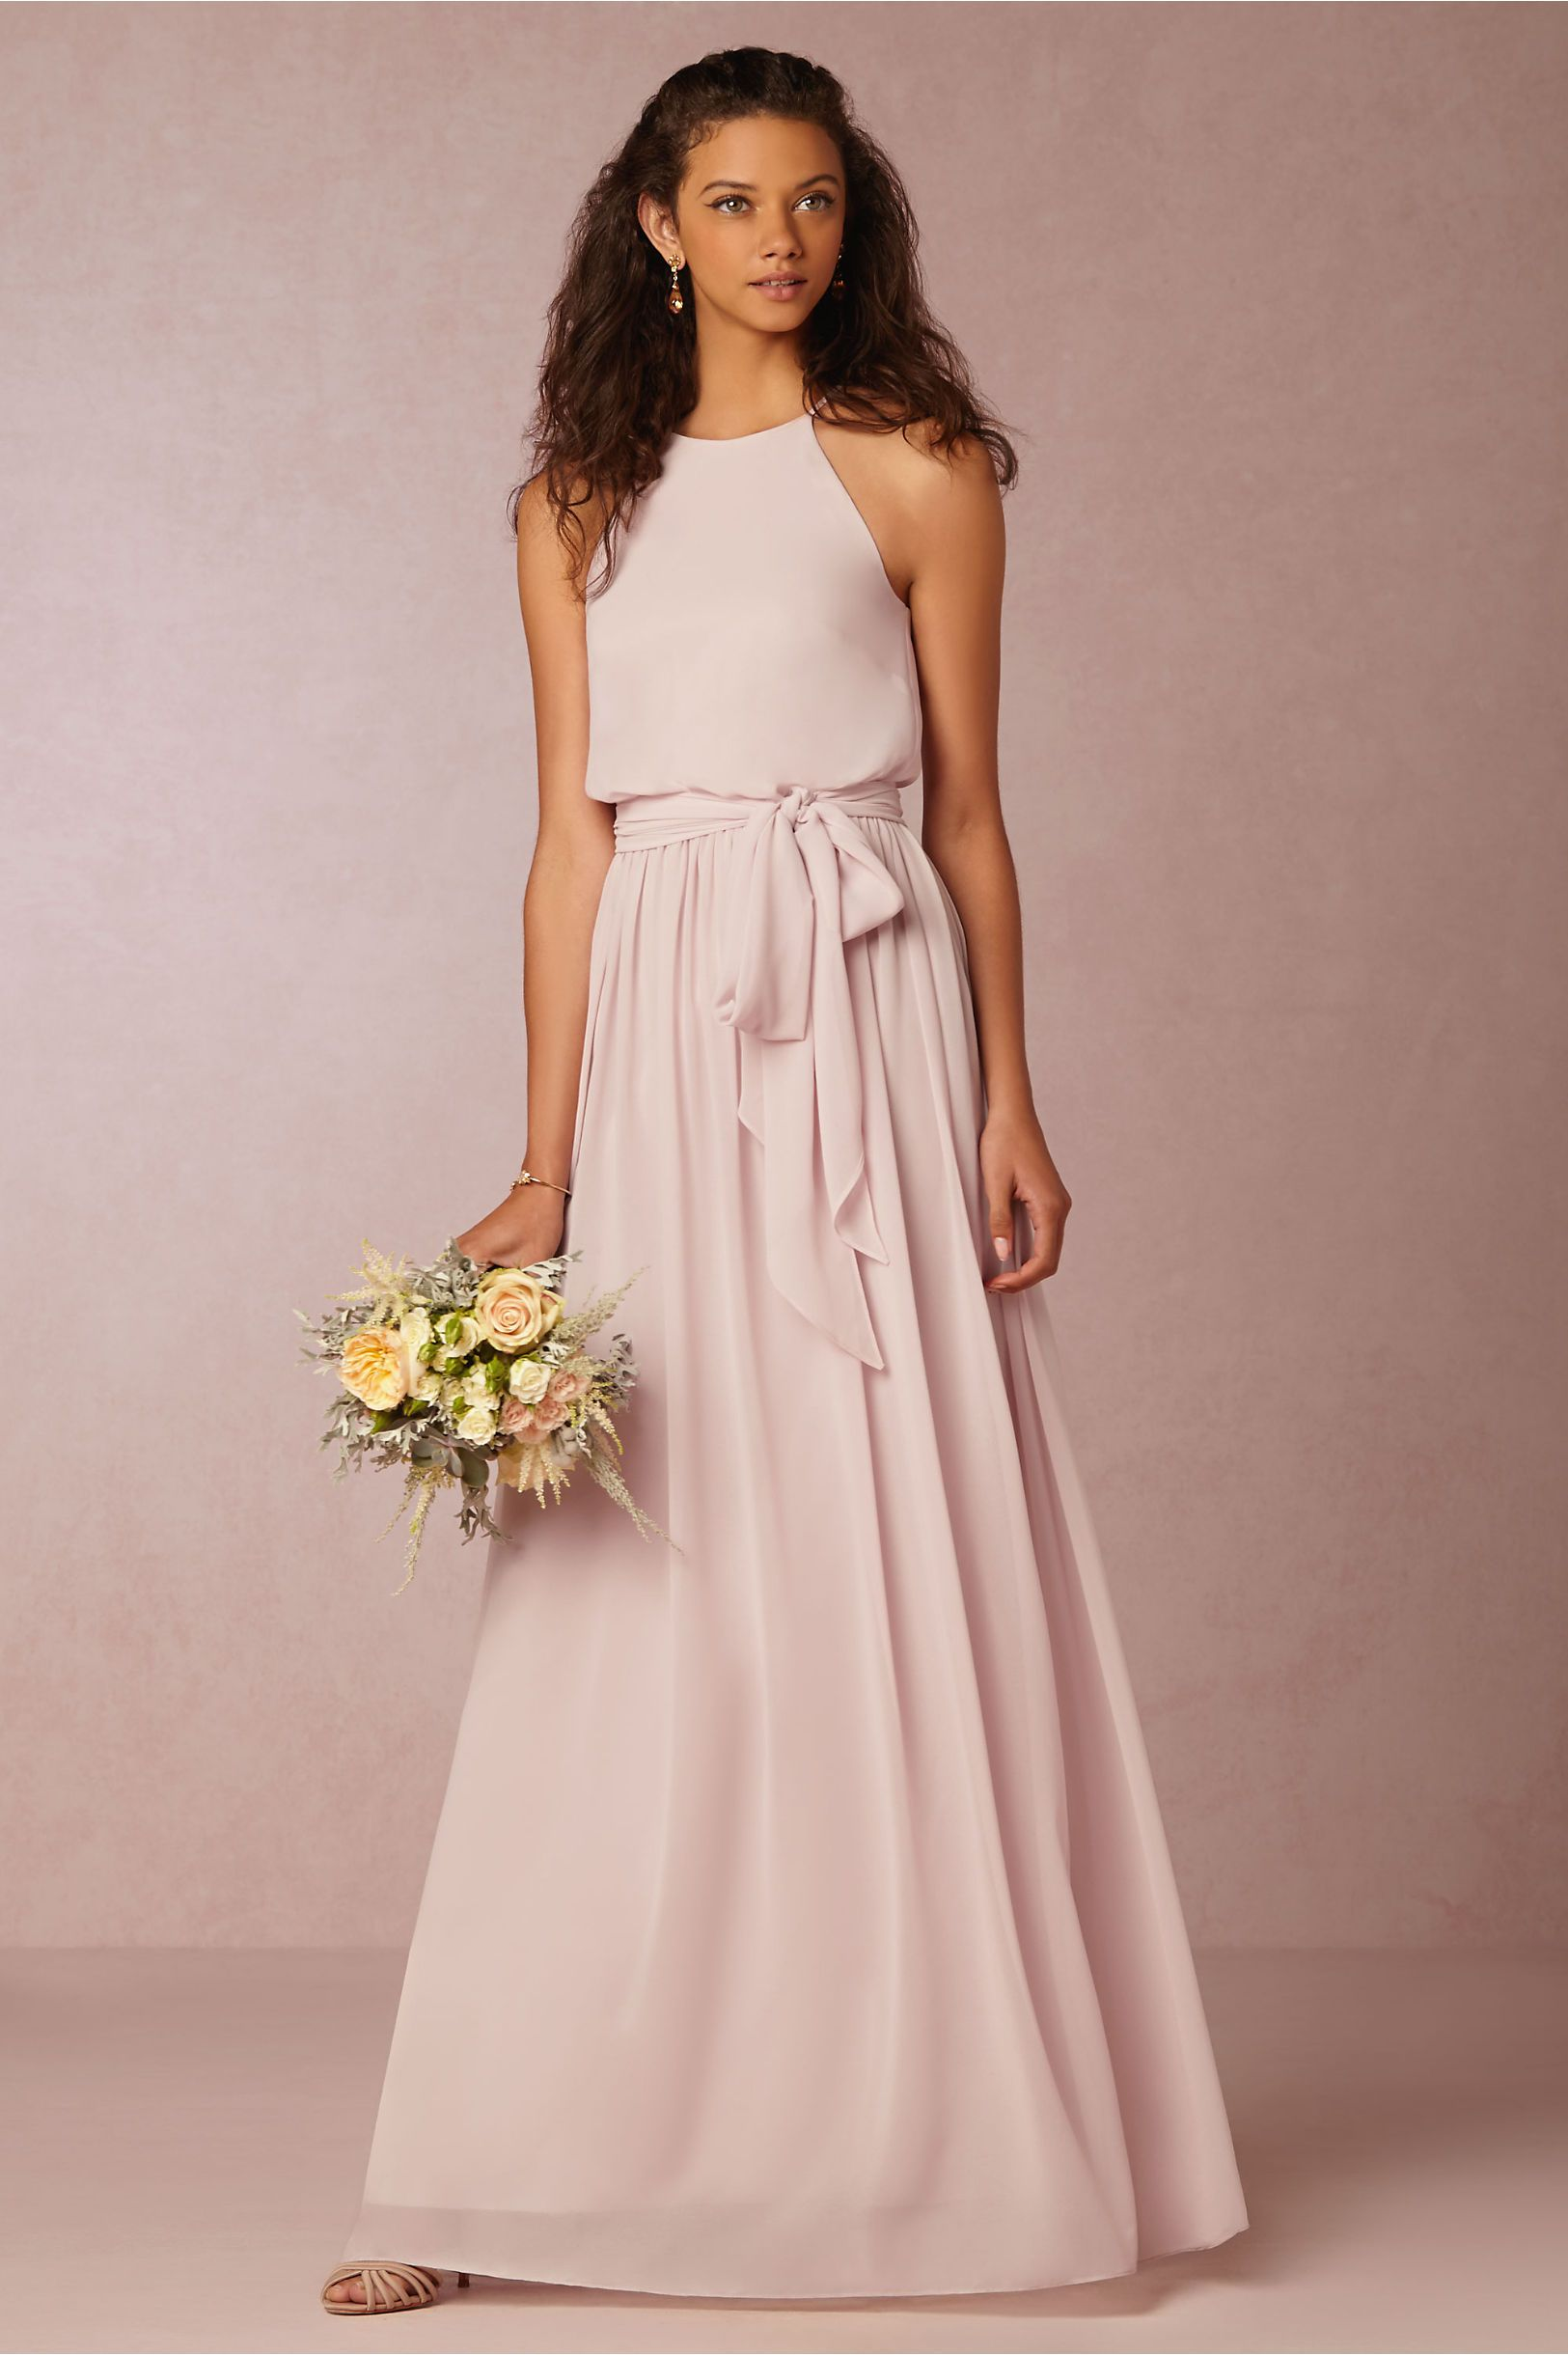 Halter Neck Blush Chiffon Sleeveless Bridesmaid Dress with Sash ...